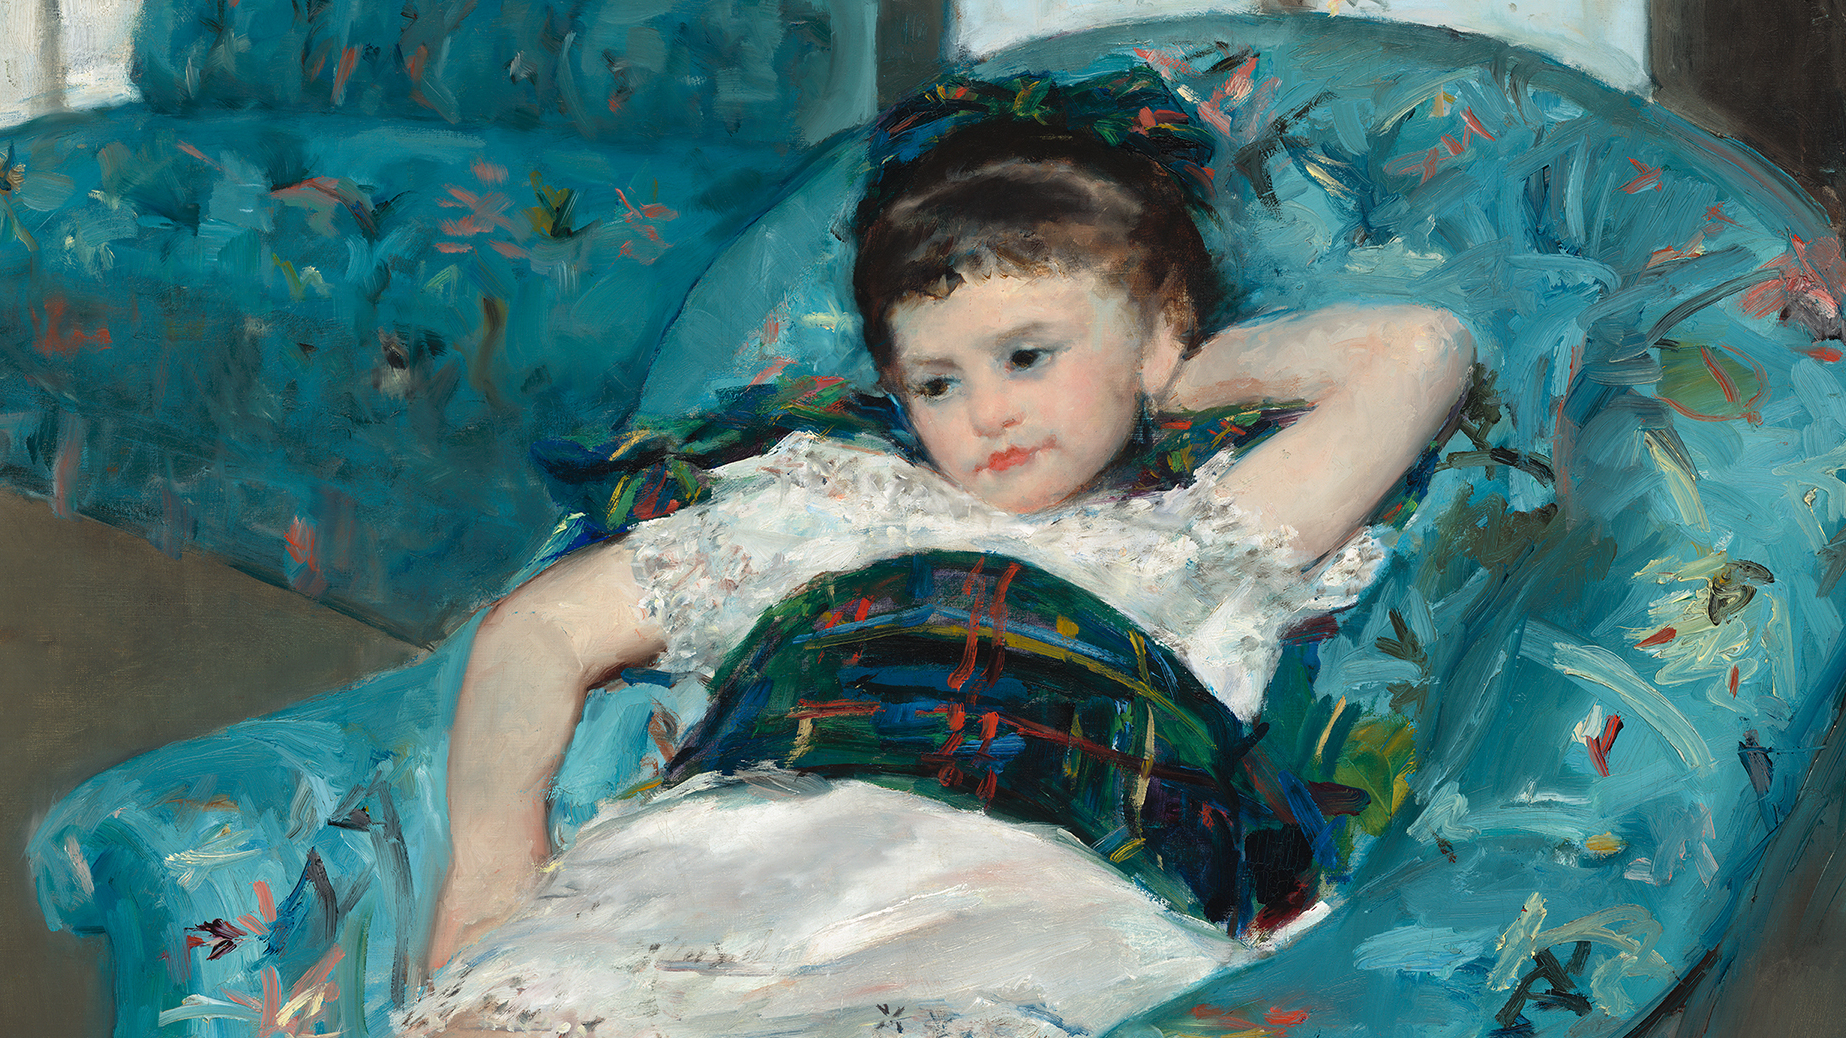 Attractive The Painting Partnership Of Degas And Cassatt : NPR